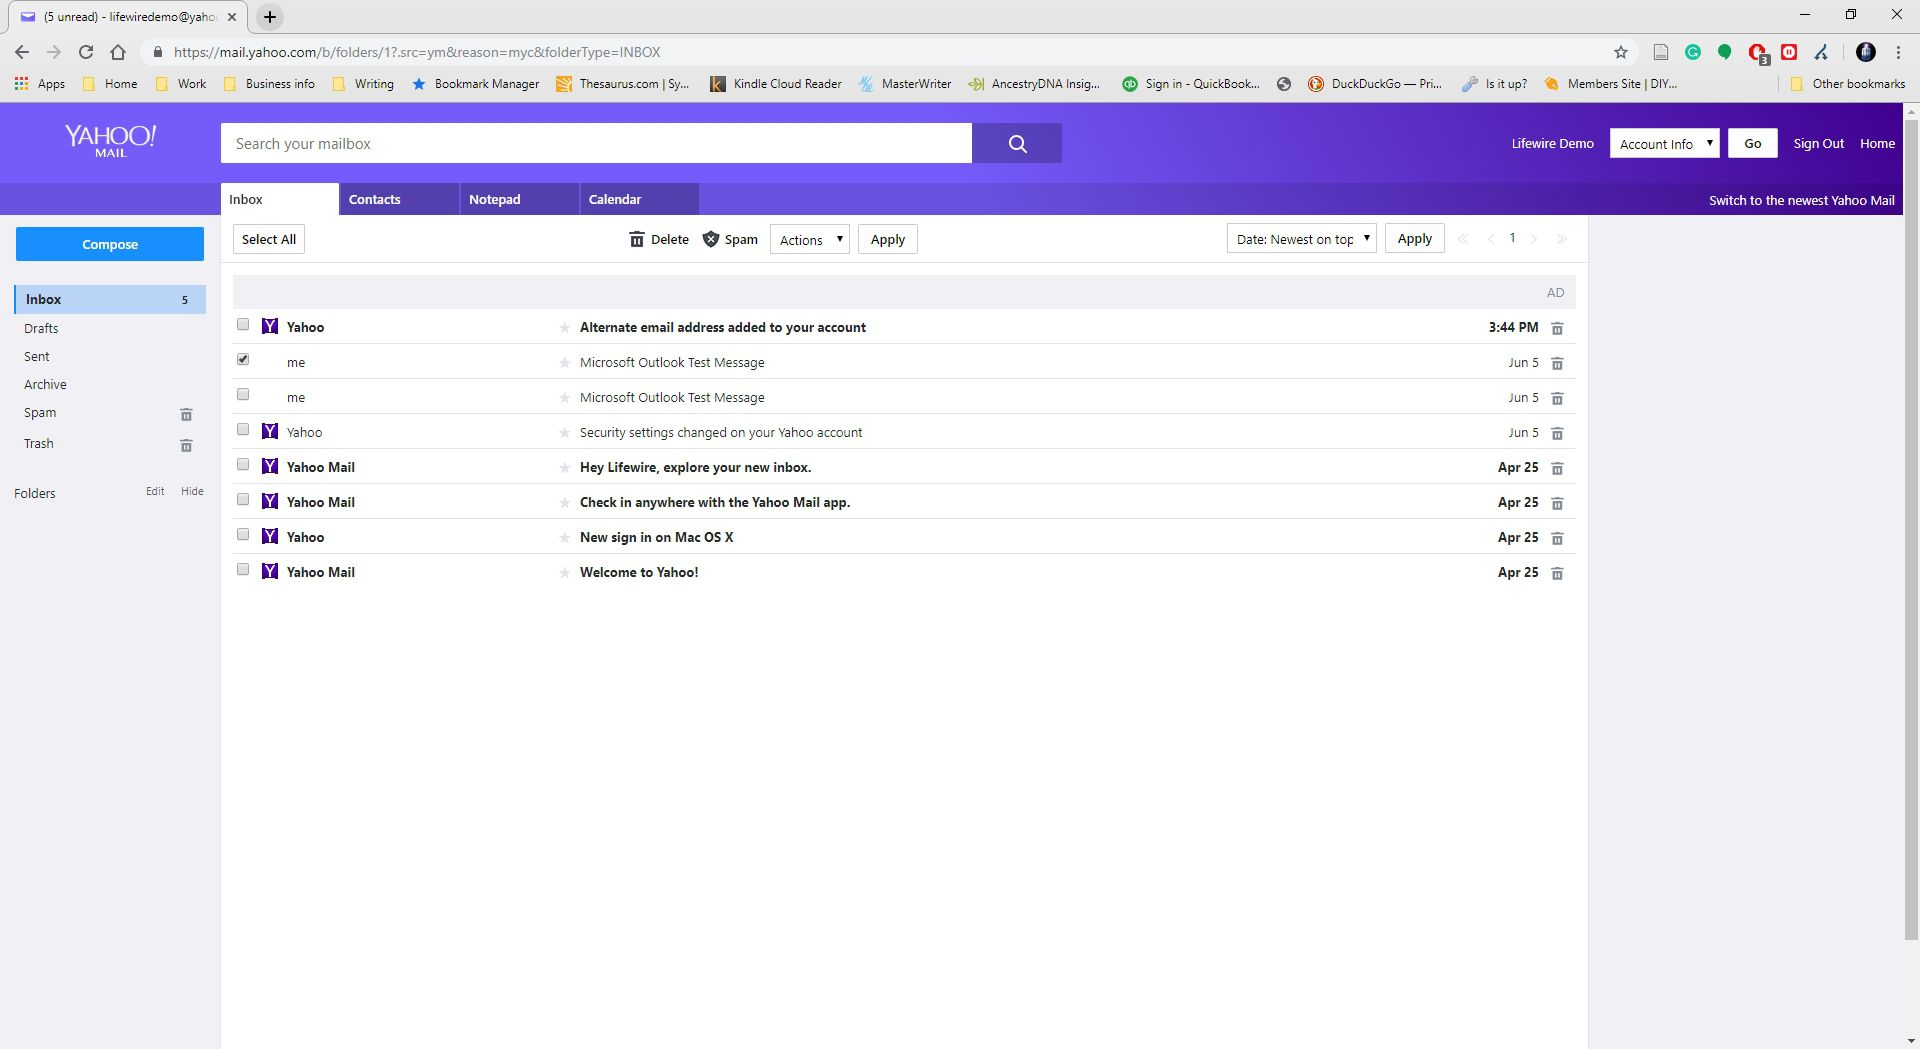 Screenshot showing an open email within Yahoo Mail.